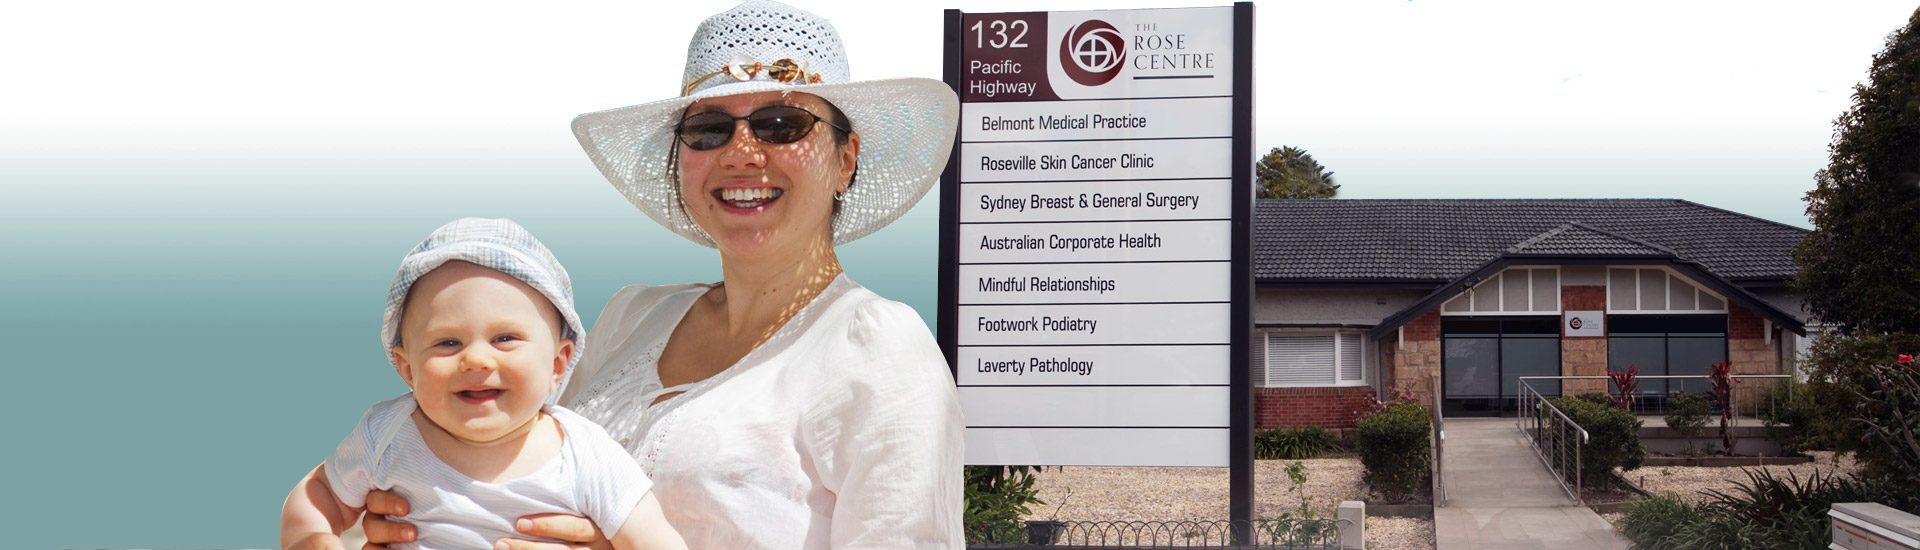 Belmont Medical & Roseville Skin Cancer Clinics - Rose Centre Roseville